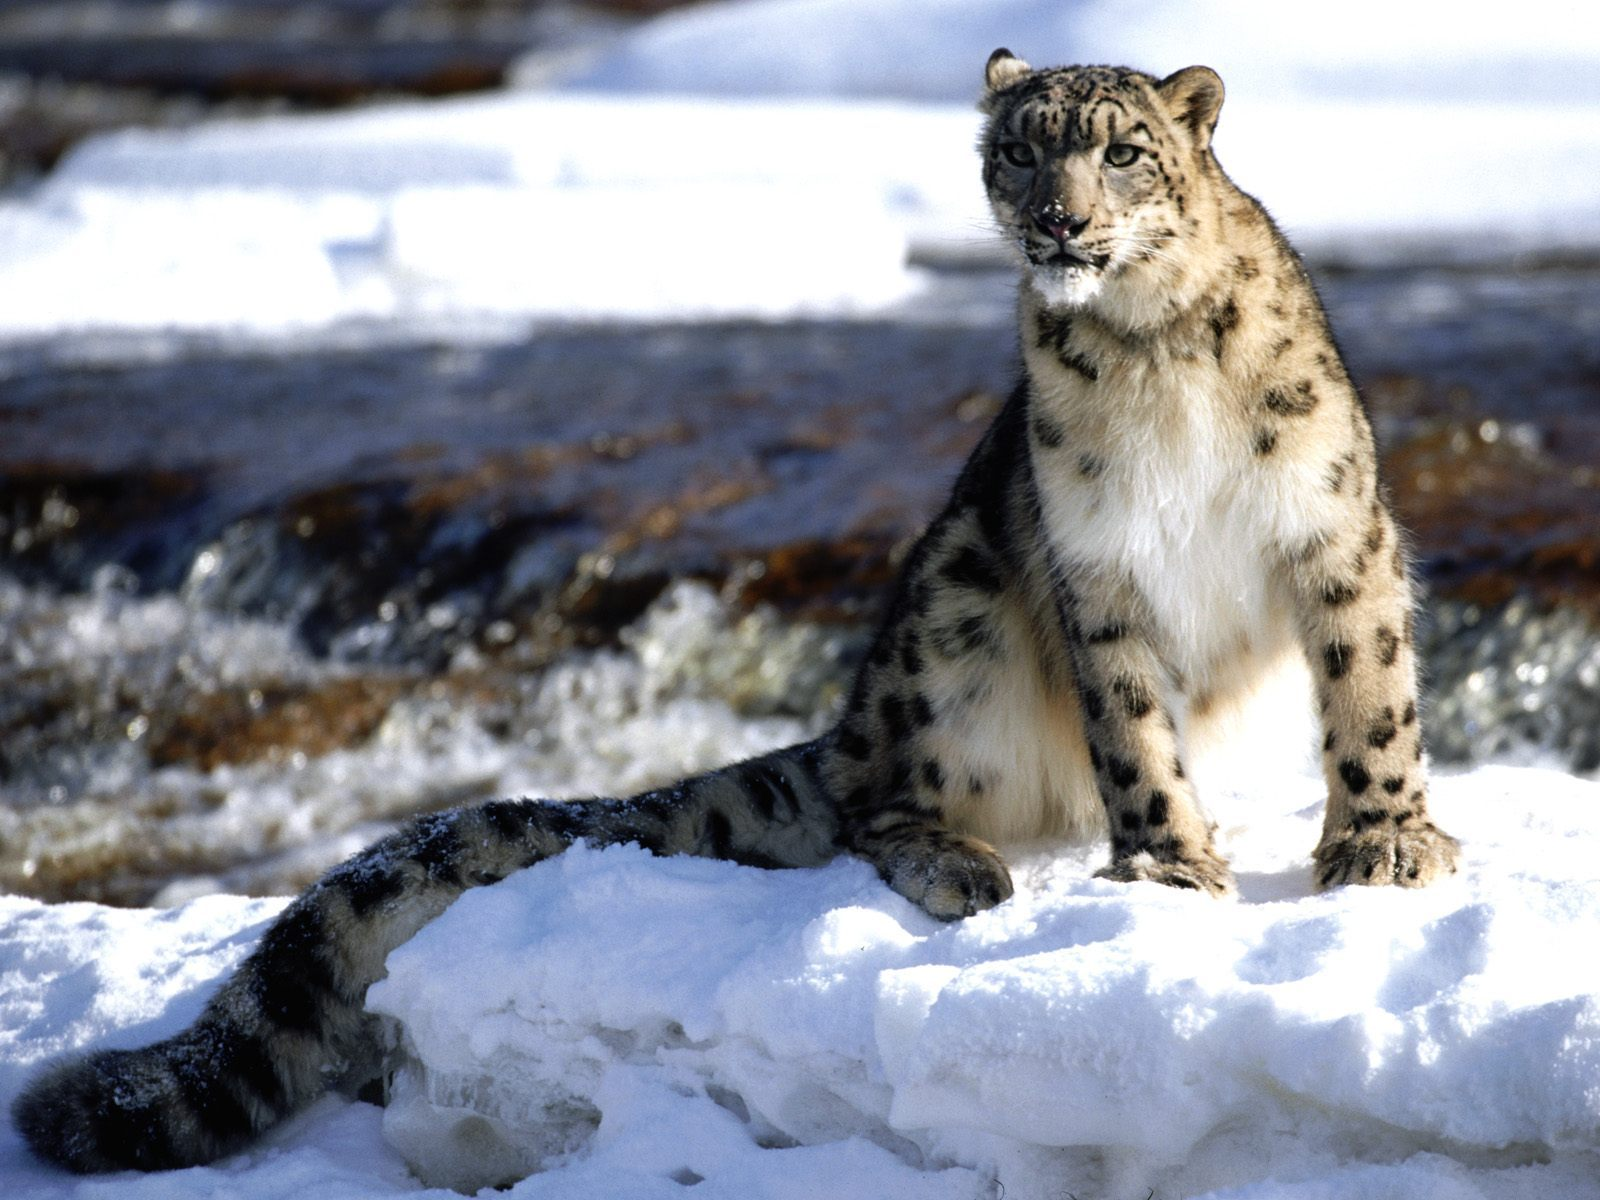 12883 download wallpaper Animals, Winter, Snow Leopard, Snow screensavers and pictures for free